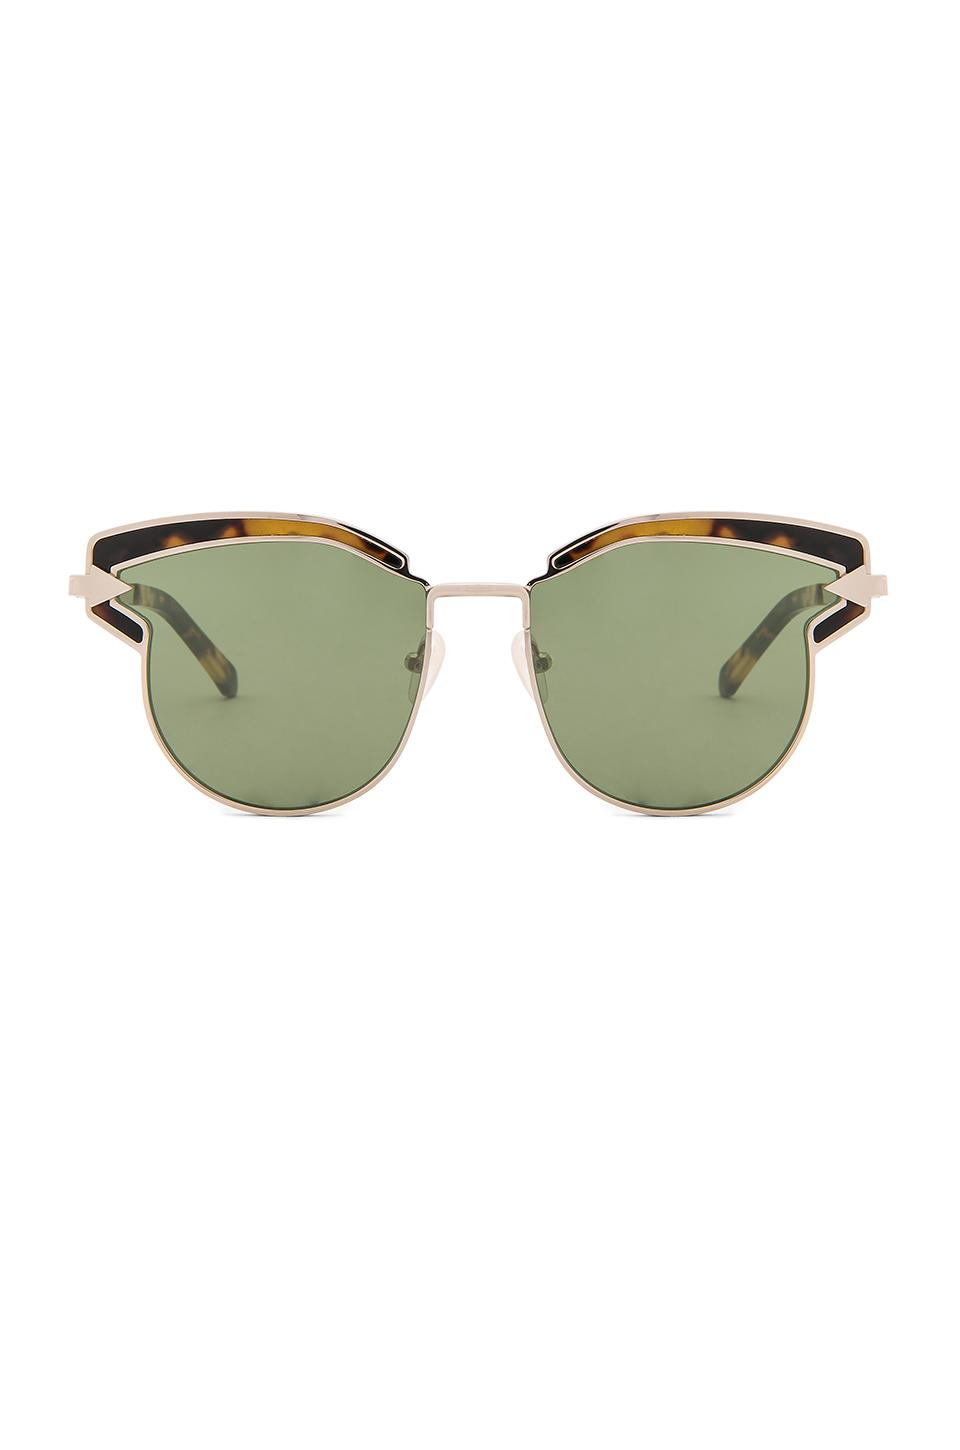 Karen Walker Felipe In Gold & Crazy Tortoise